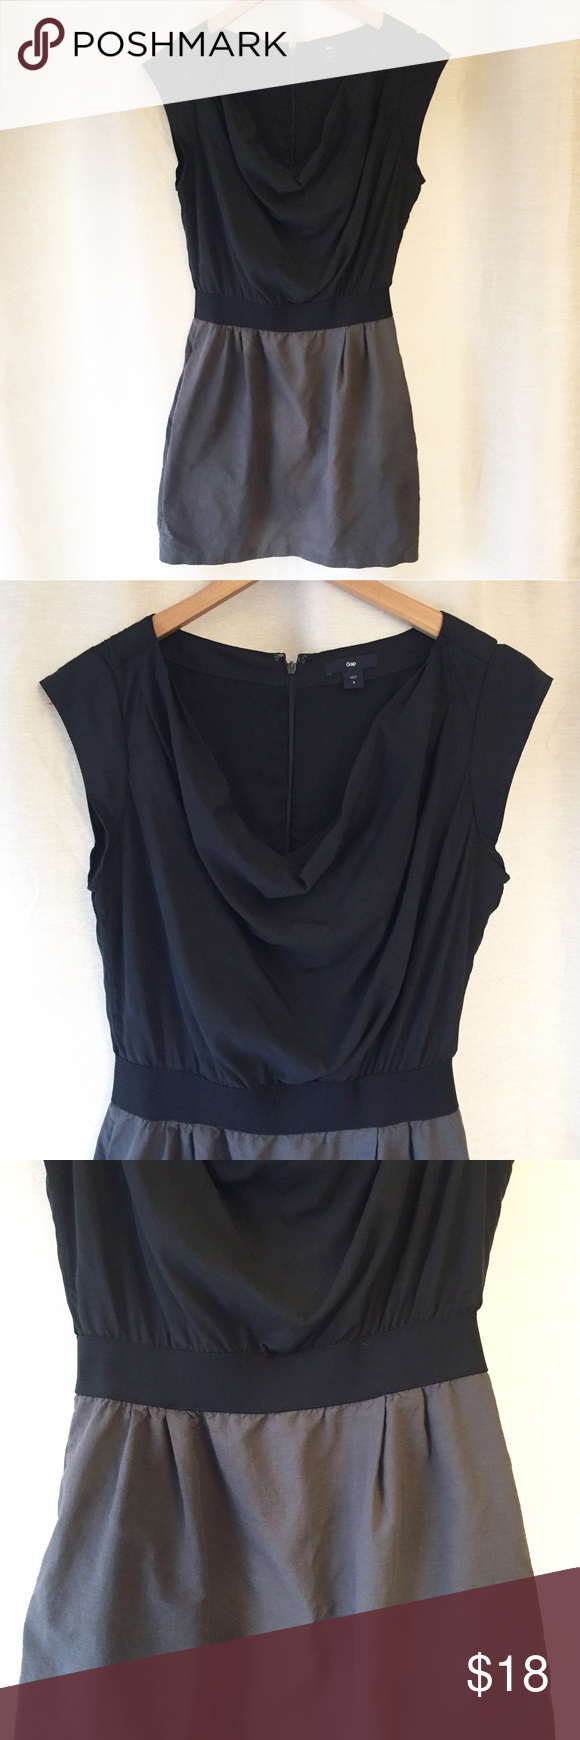 """Gap Cowl Neck Dress Gap cowl neck dress in a size 4. This dress is very versatile; dress up or down. Skirt portion is lined. In great condition. Flat measurement of length is 33"""". Upper: 71% modal, 29% polyester Lower: 100% cotton. GAP Dresses"""